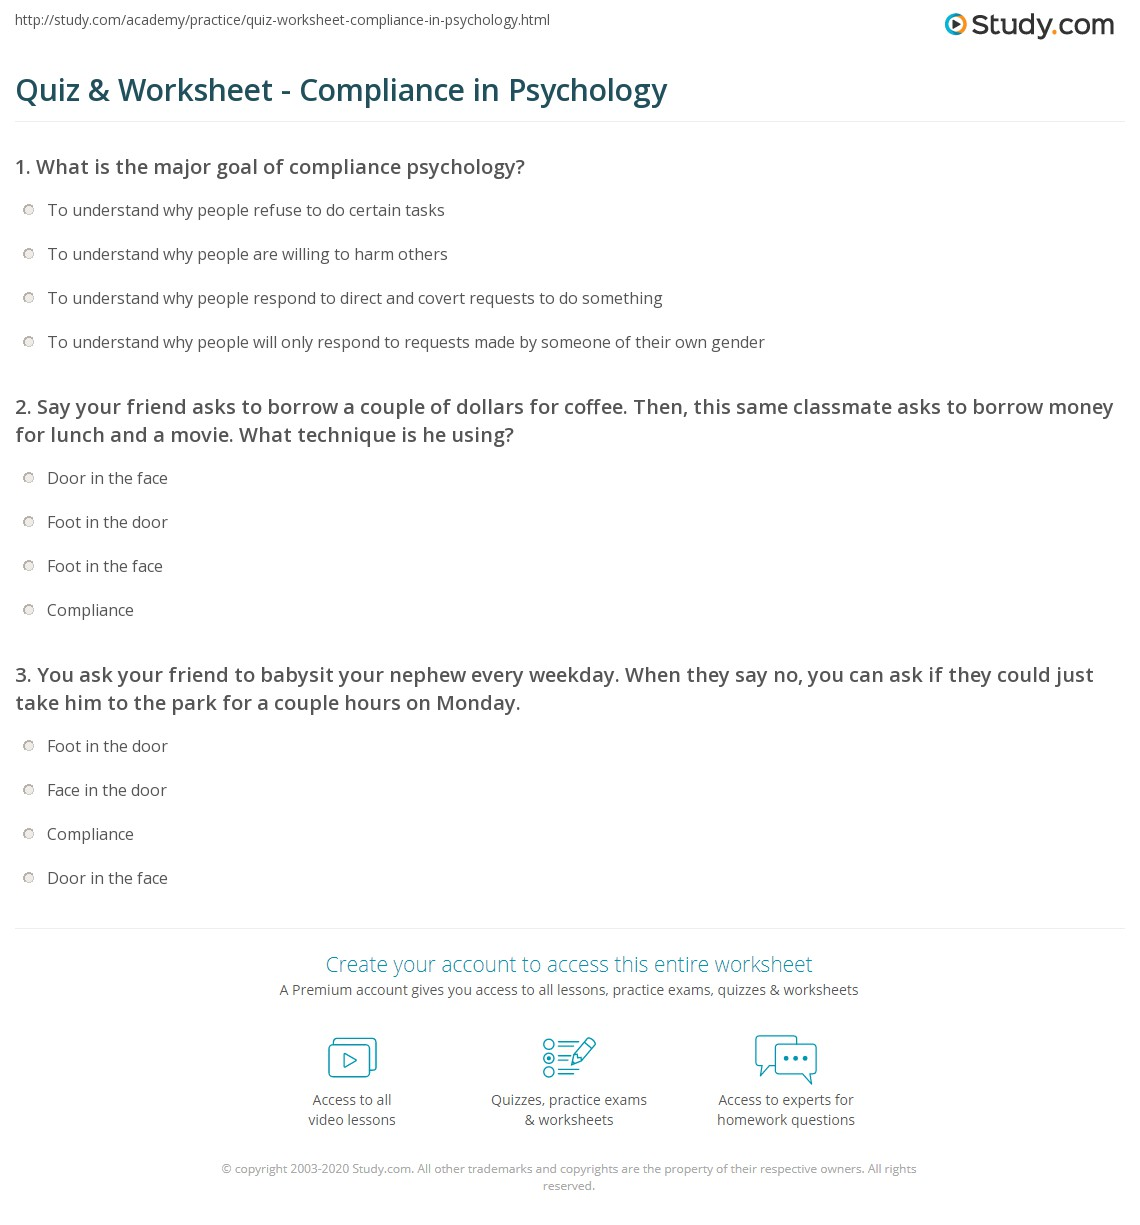 Quiz & Worksheet - Compliance in Psychology | Study.com